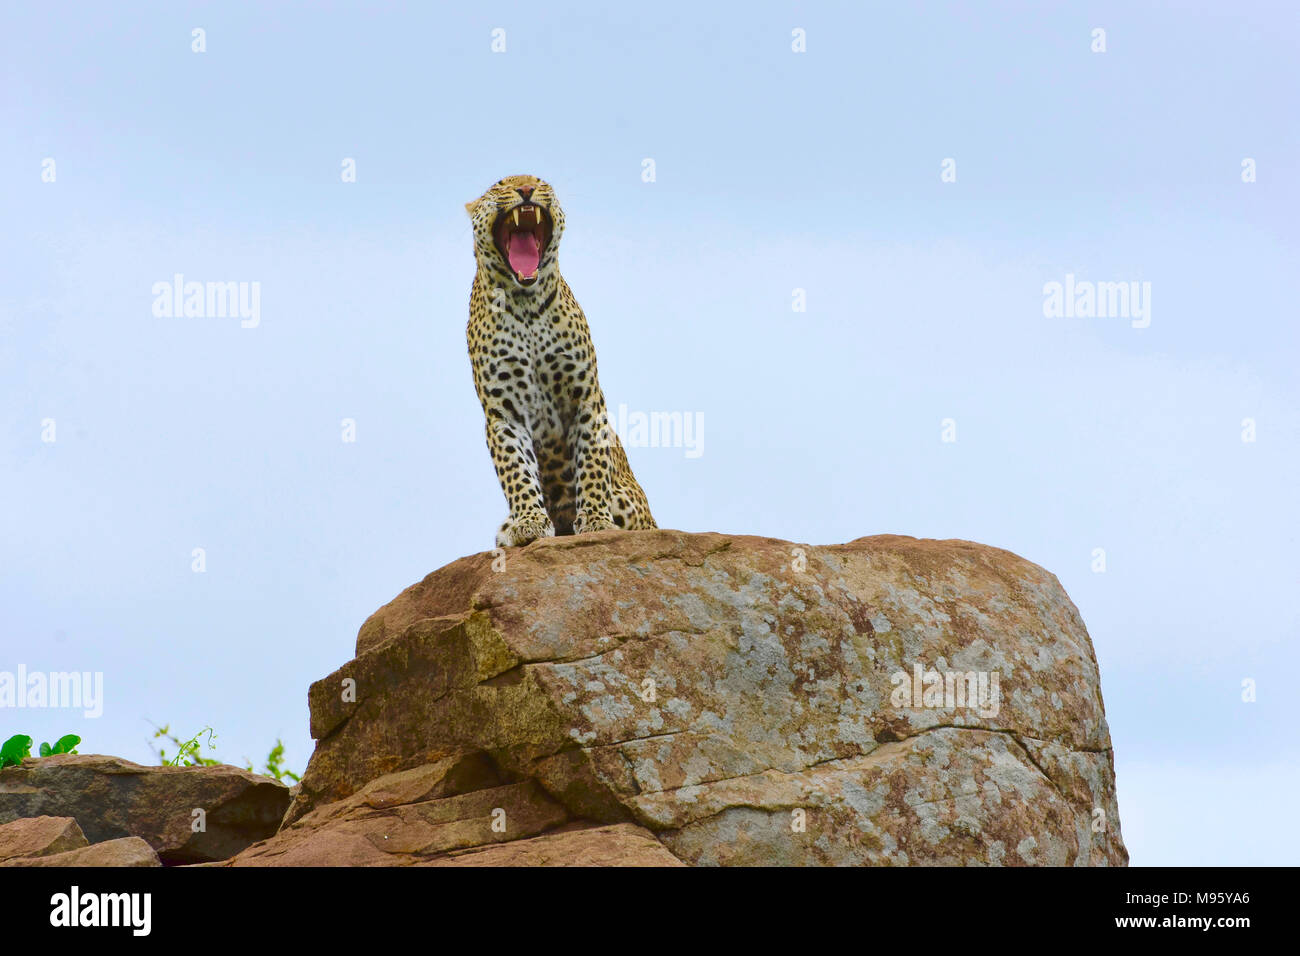 South Africa is a popular tourist destination for its blend of true African and European experiences. Kruger Park is world famous. Yawning leopard. - Stock Image